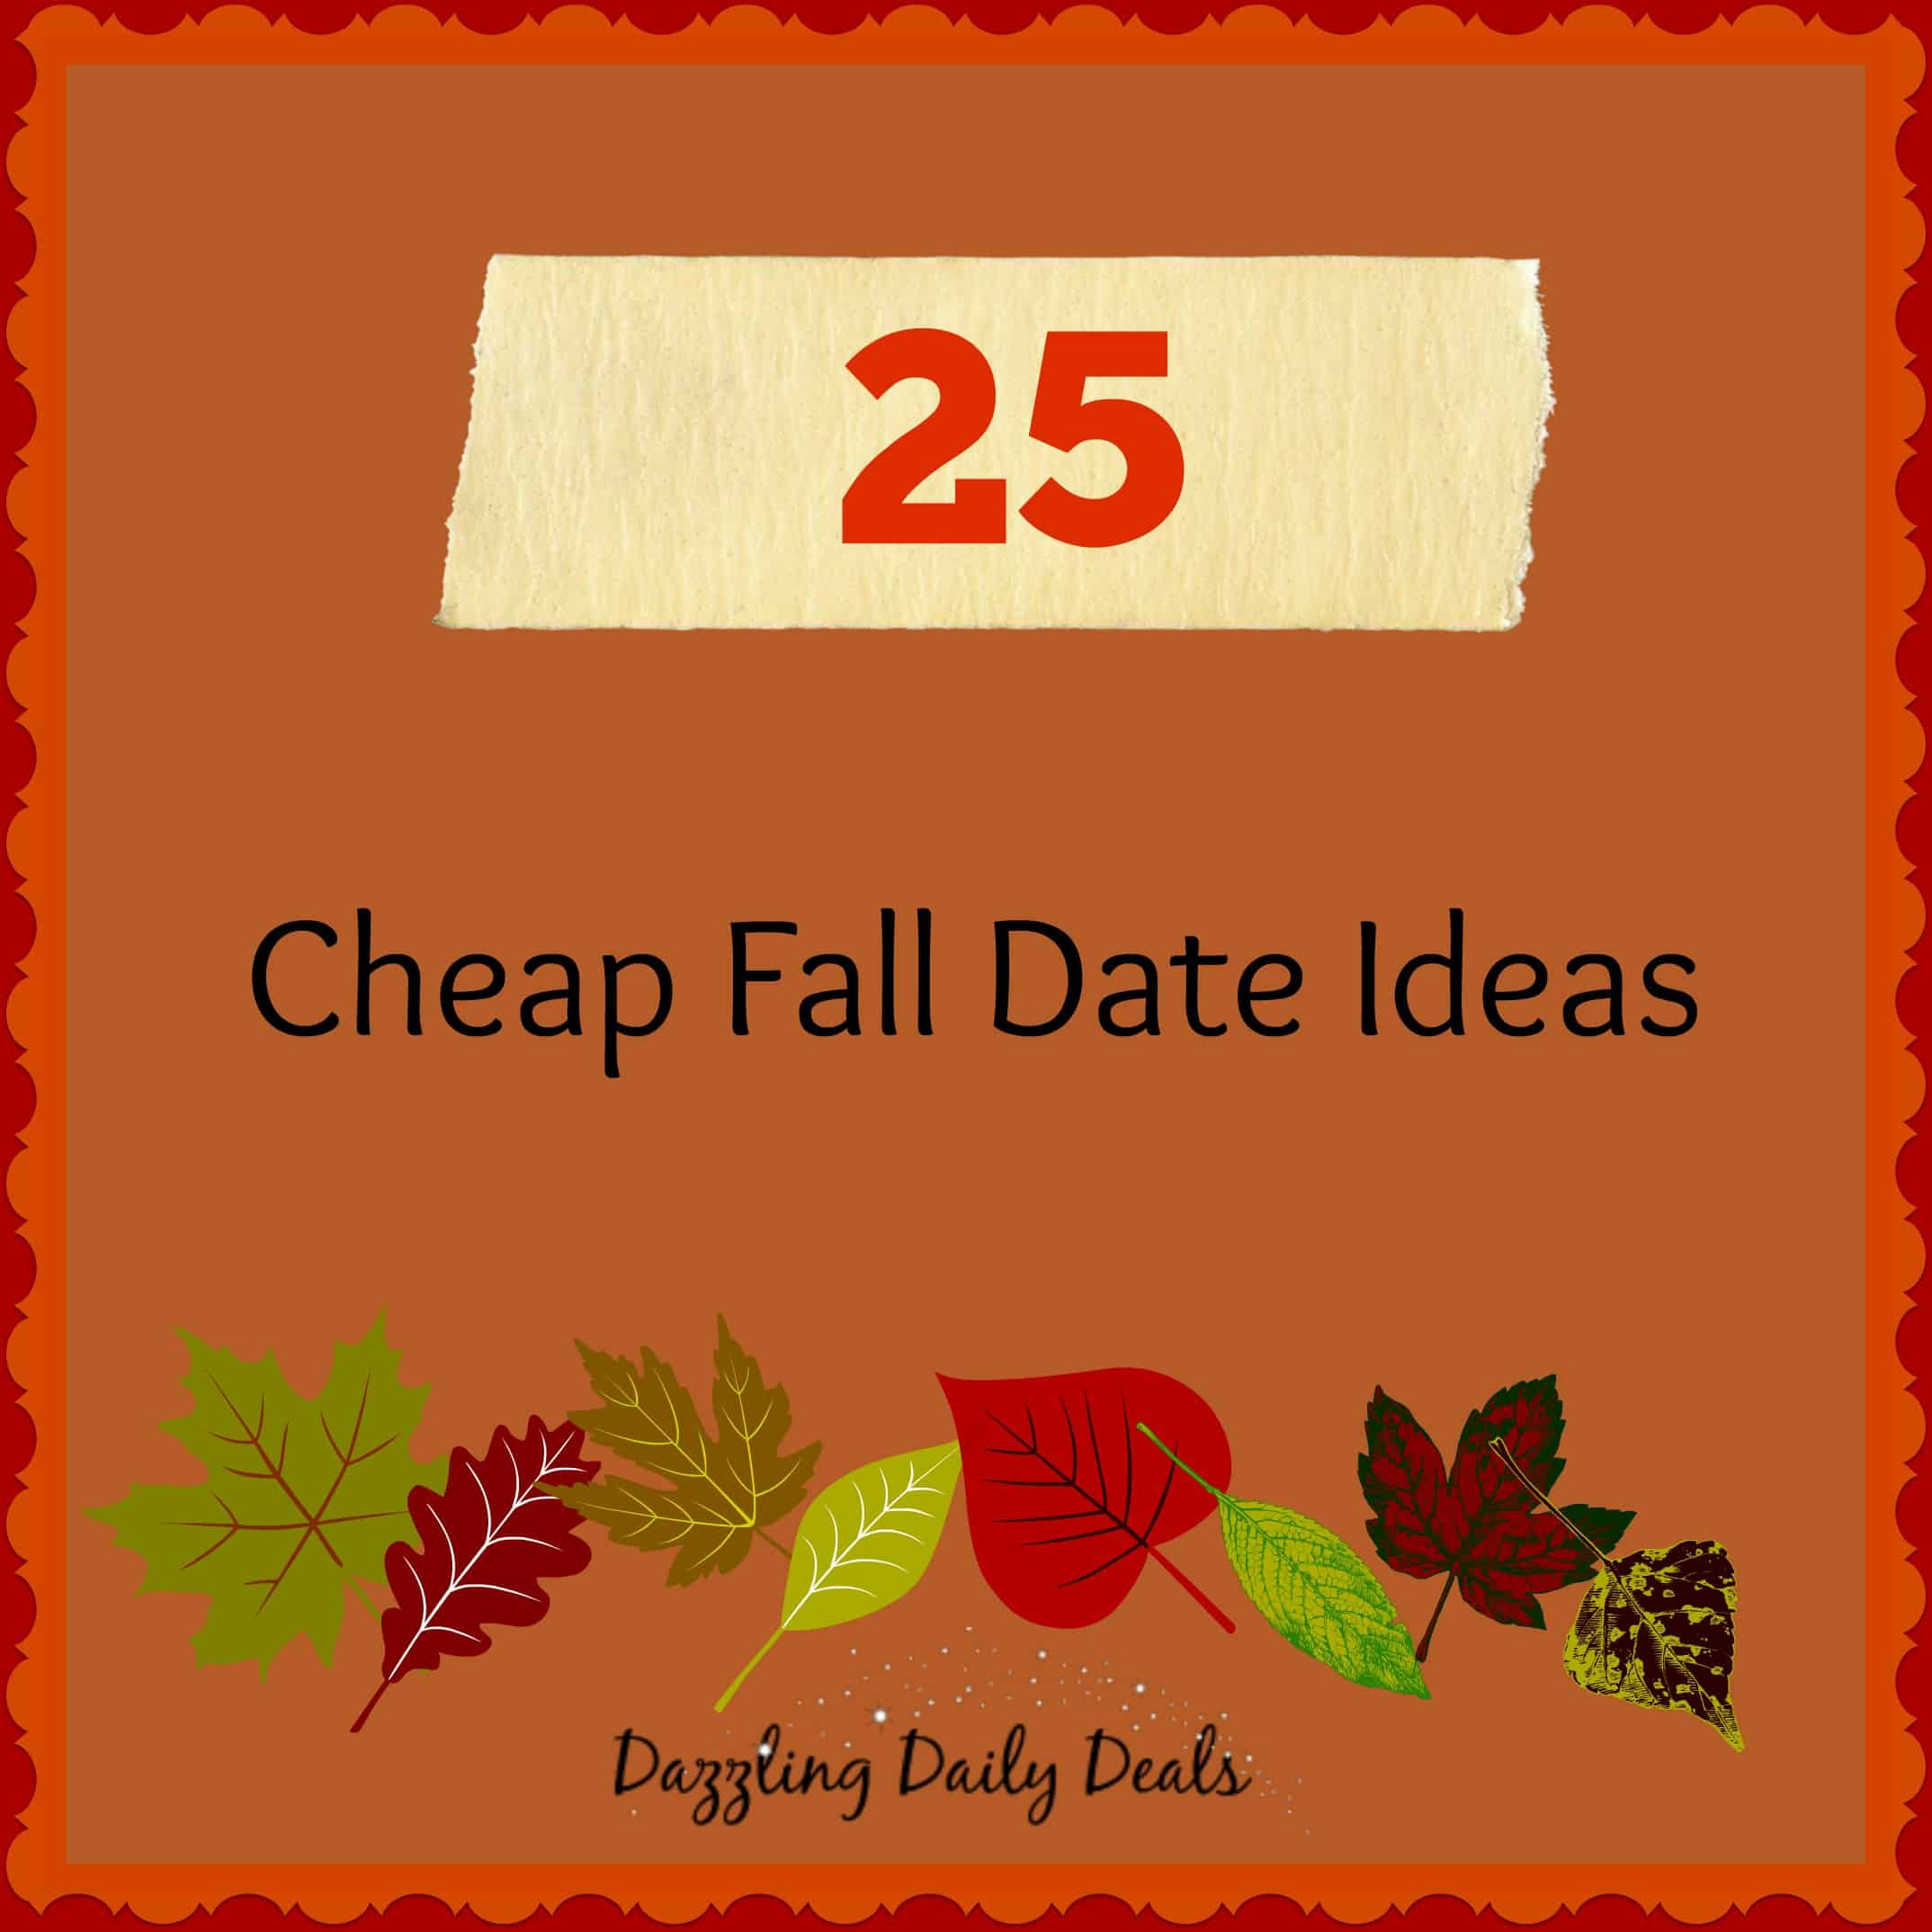 25 Cheap Fall Date Ideas